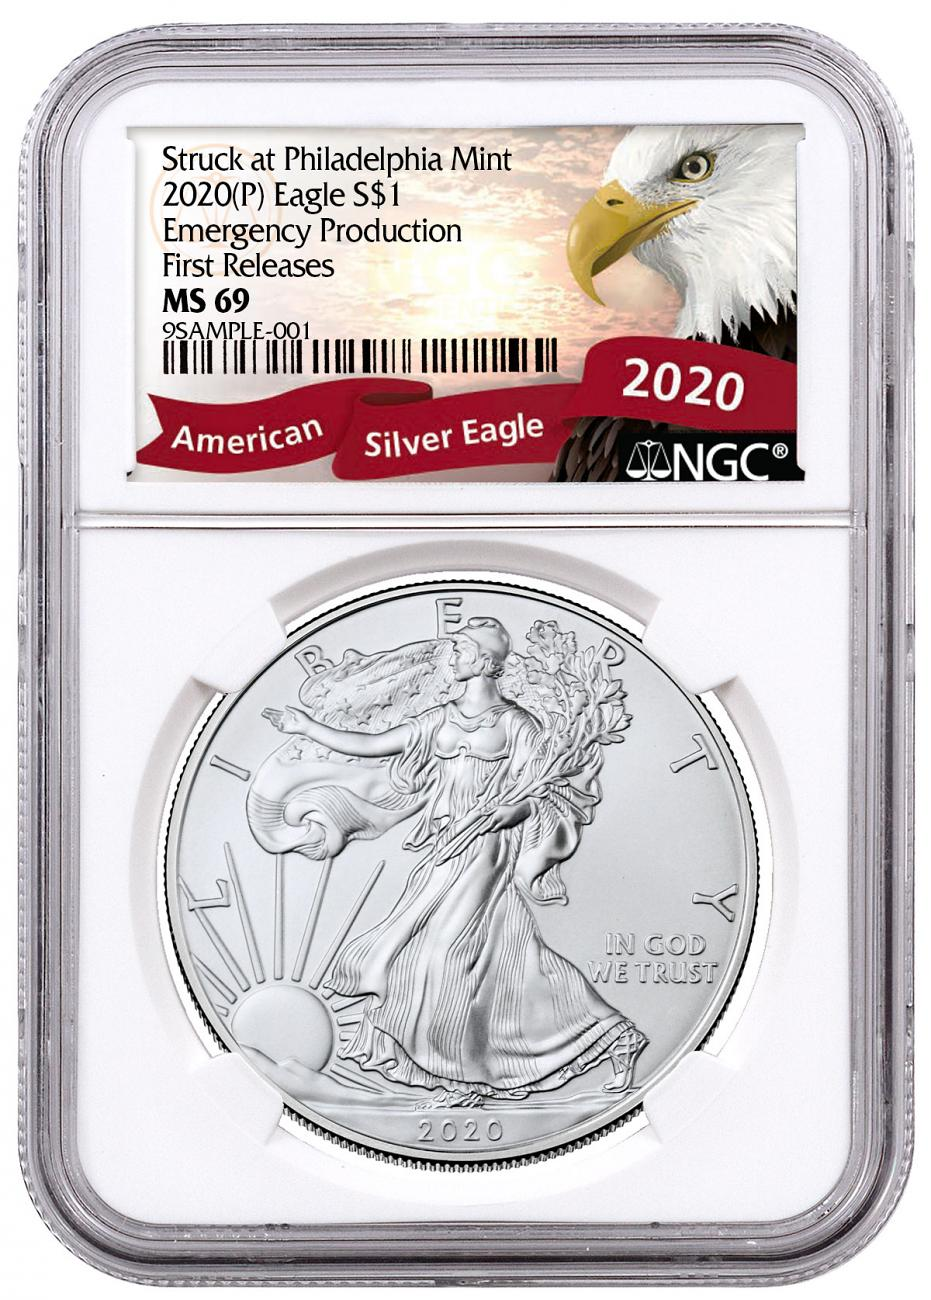 2020-(P) 1 oz Silver American Eagle Struck at Philadelphia $1 Coin NGC MS69 FR Exclusive Eagle Label